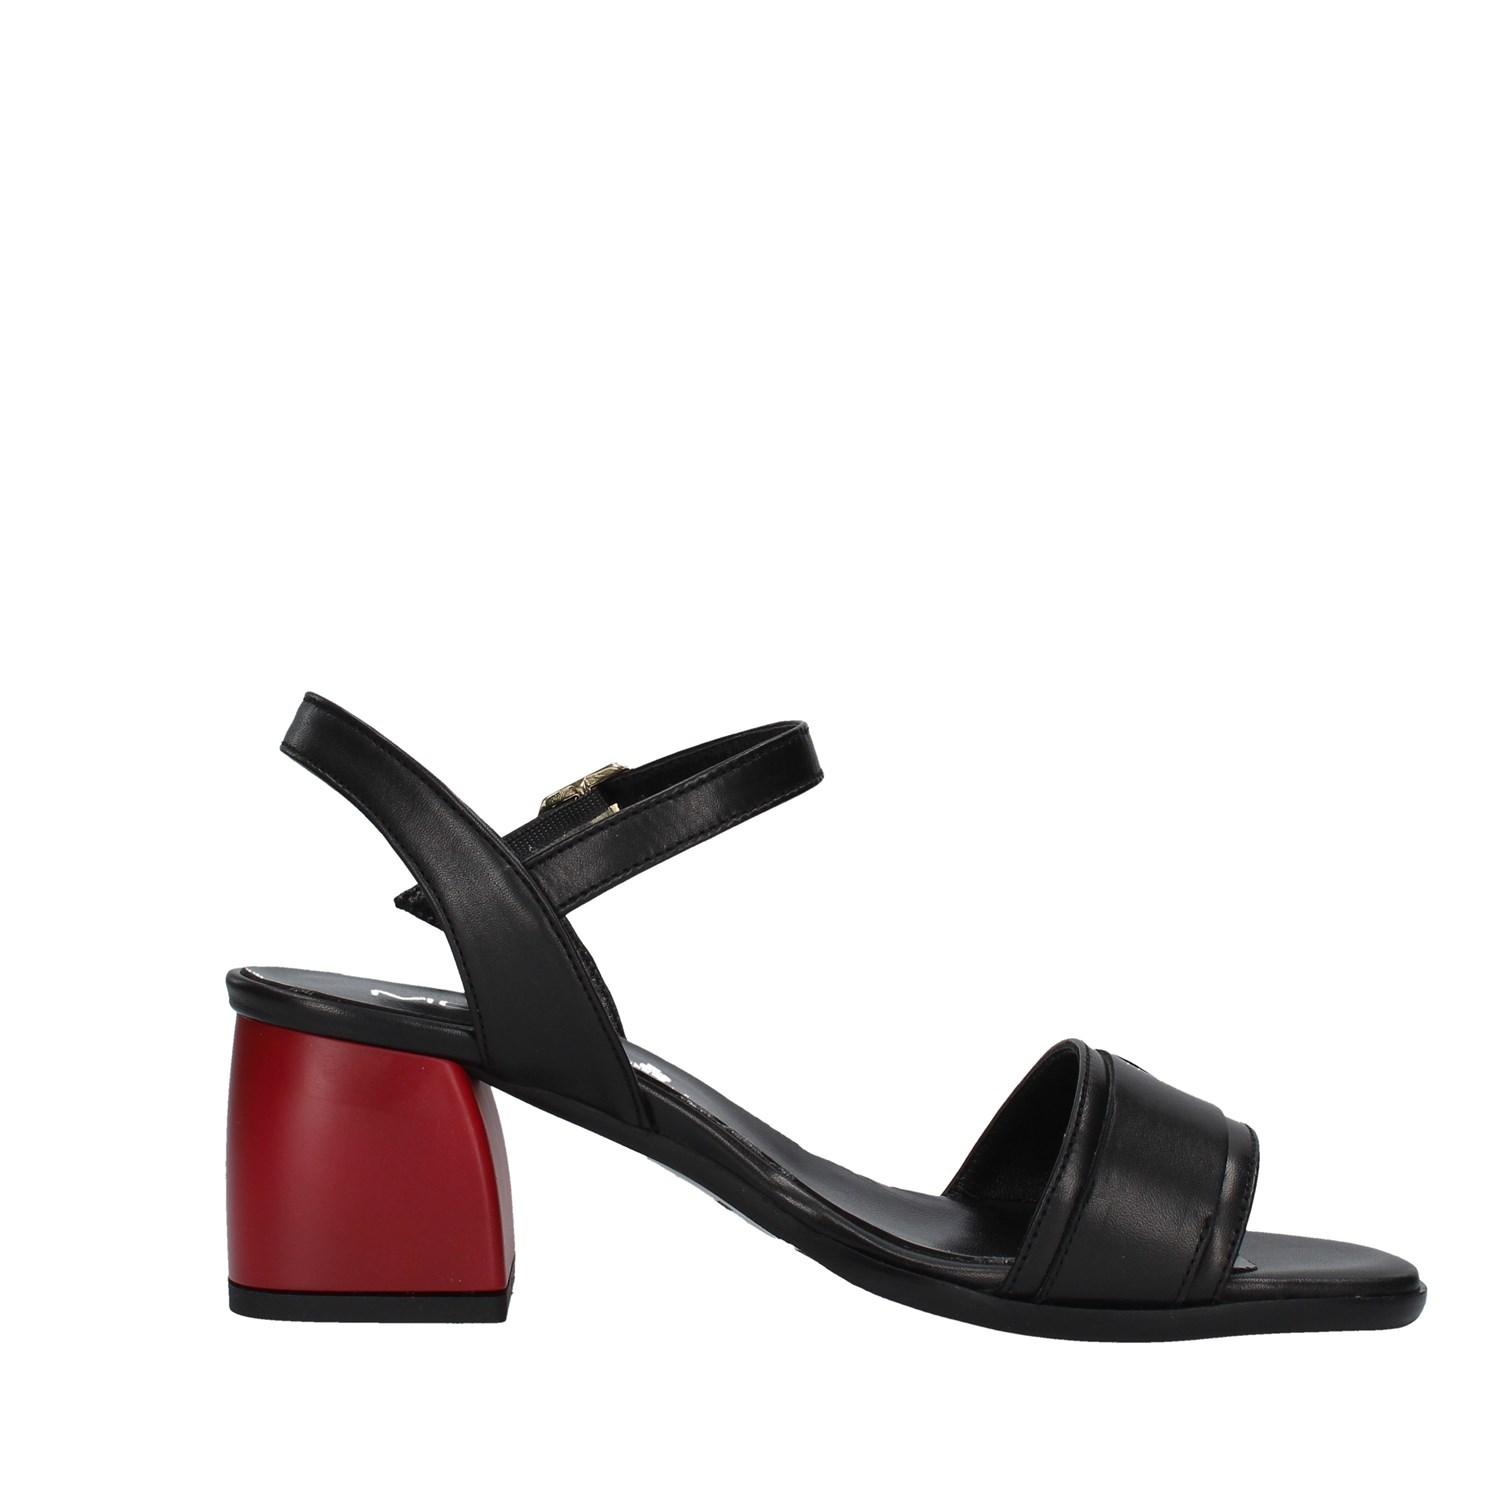 Mot-cle' Shoes Woman With heel BLACK DS0232C